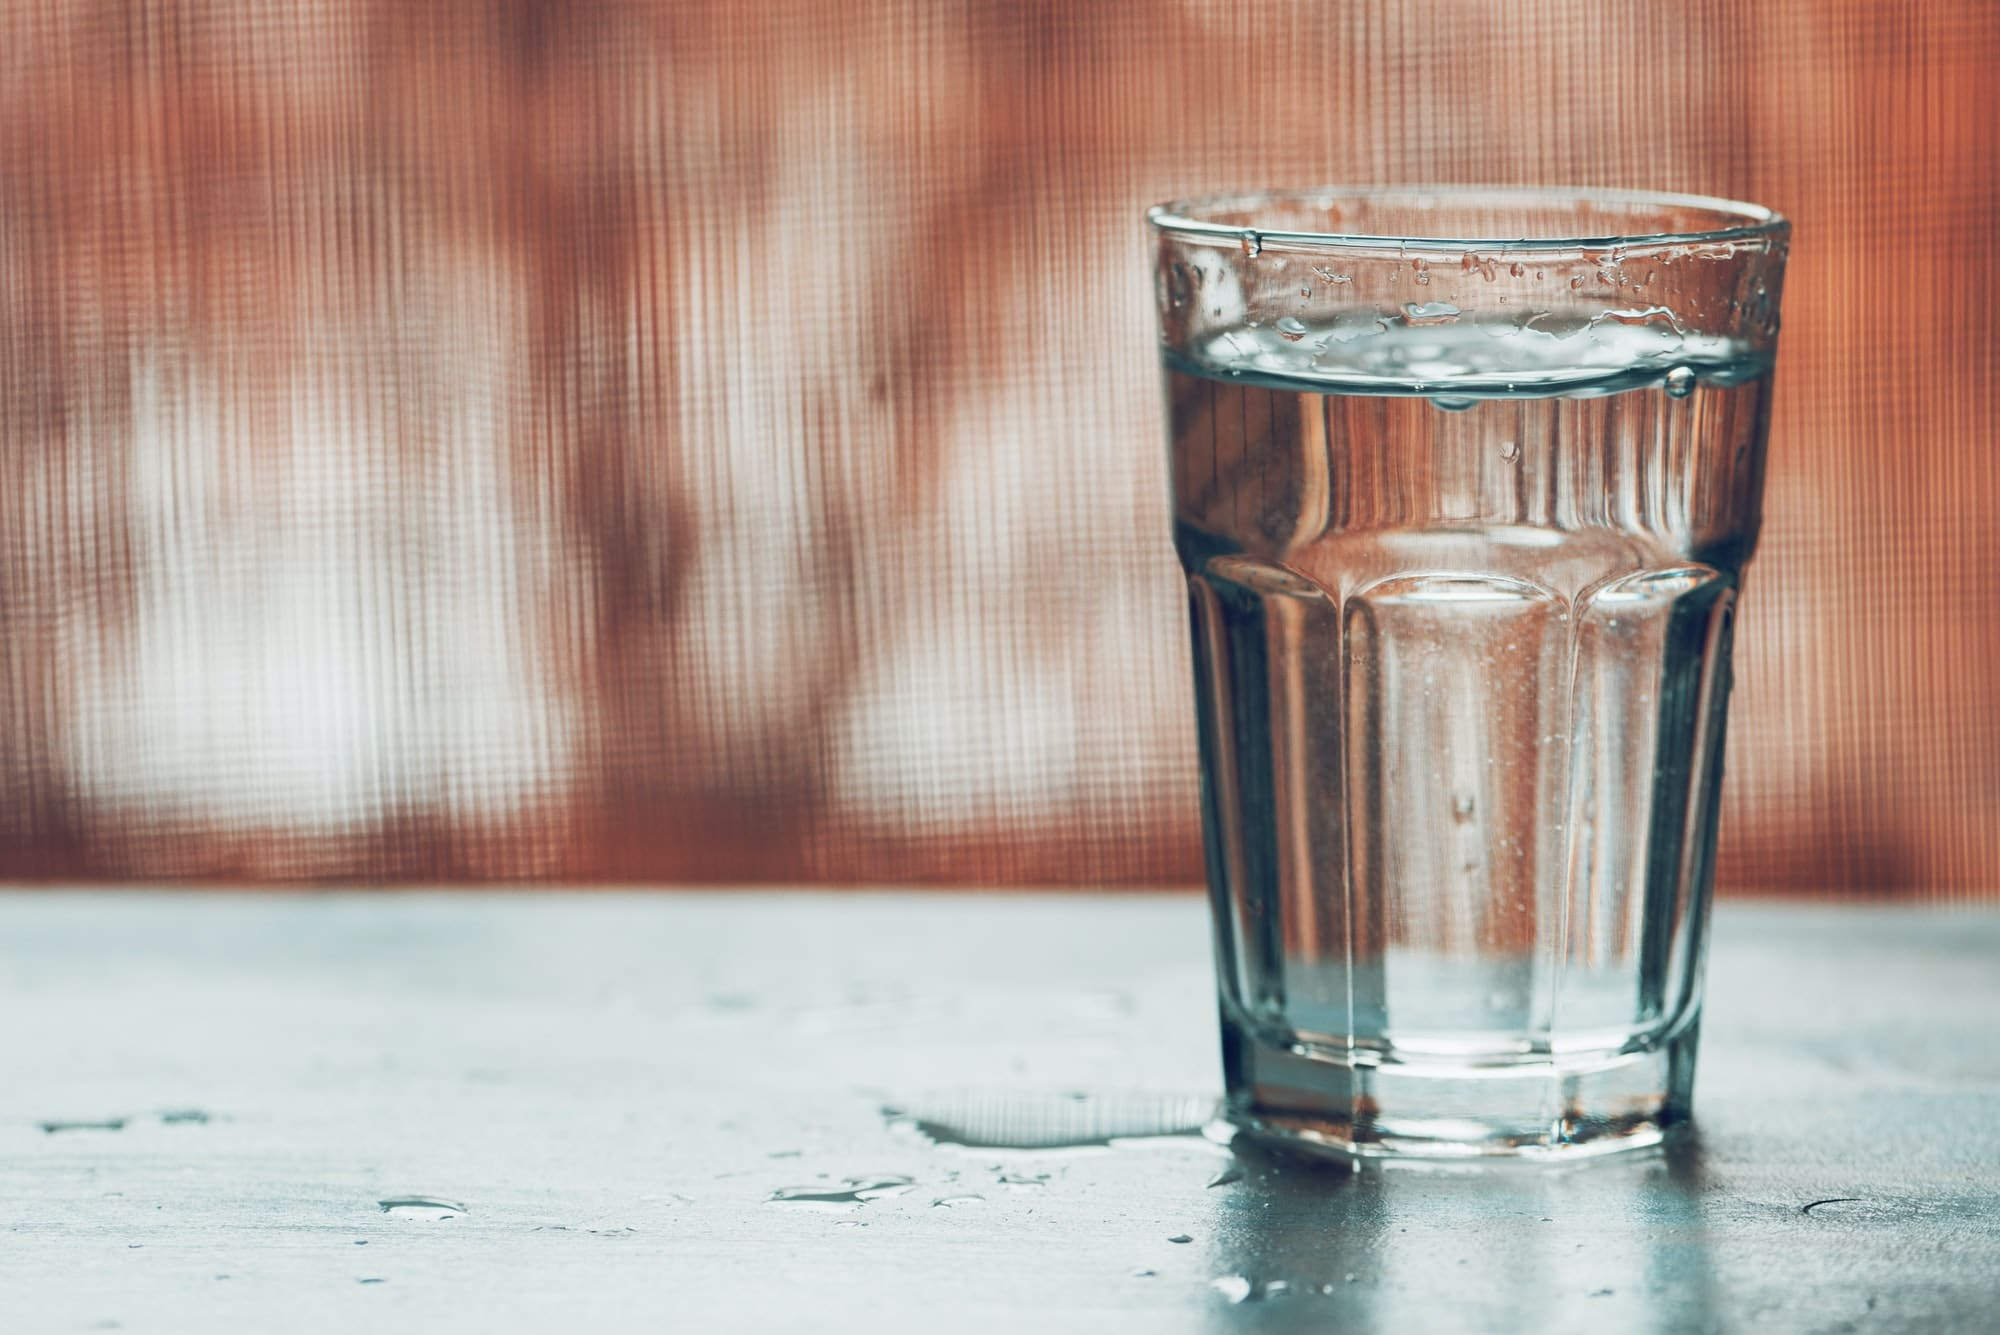 drinking water after waking up